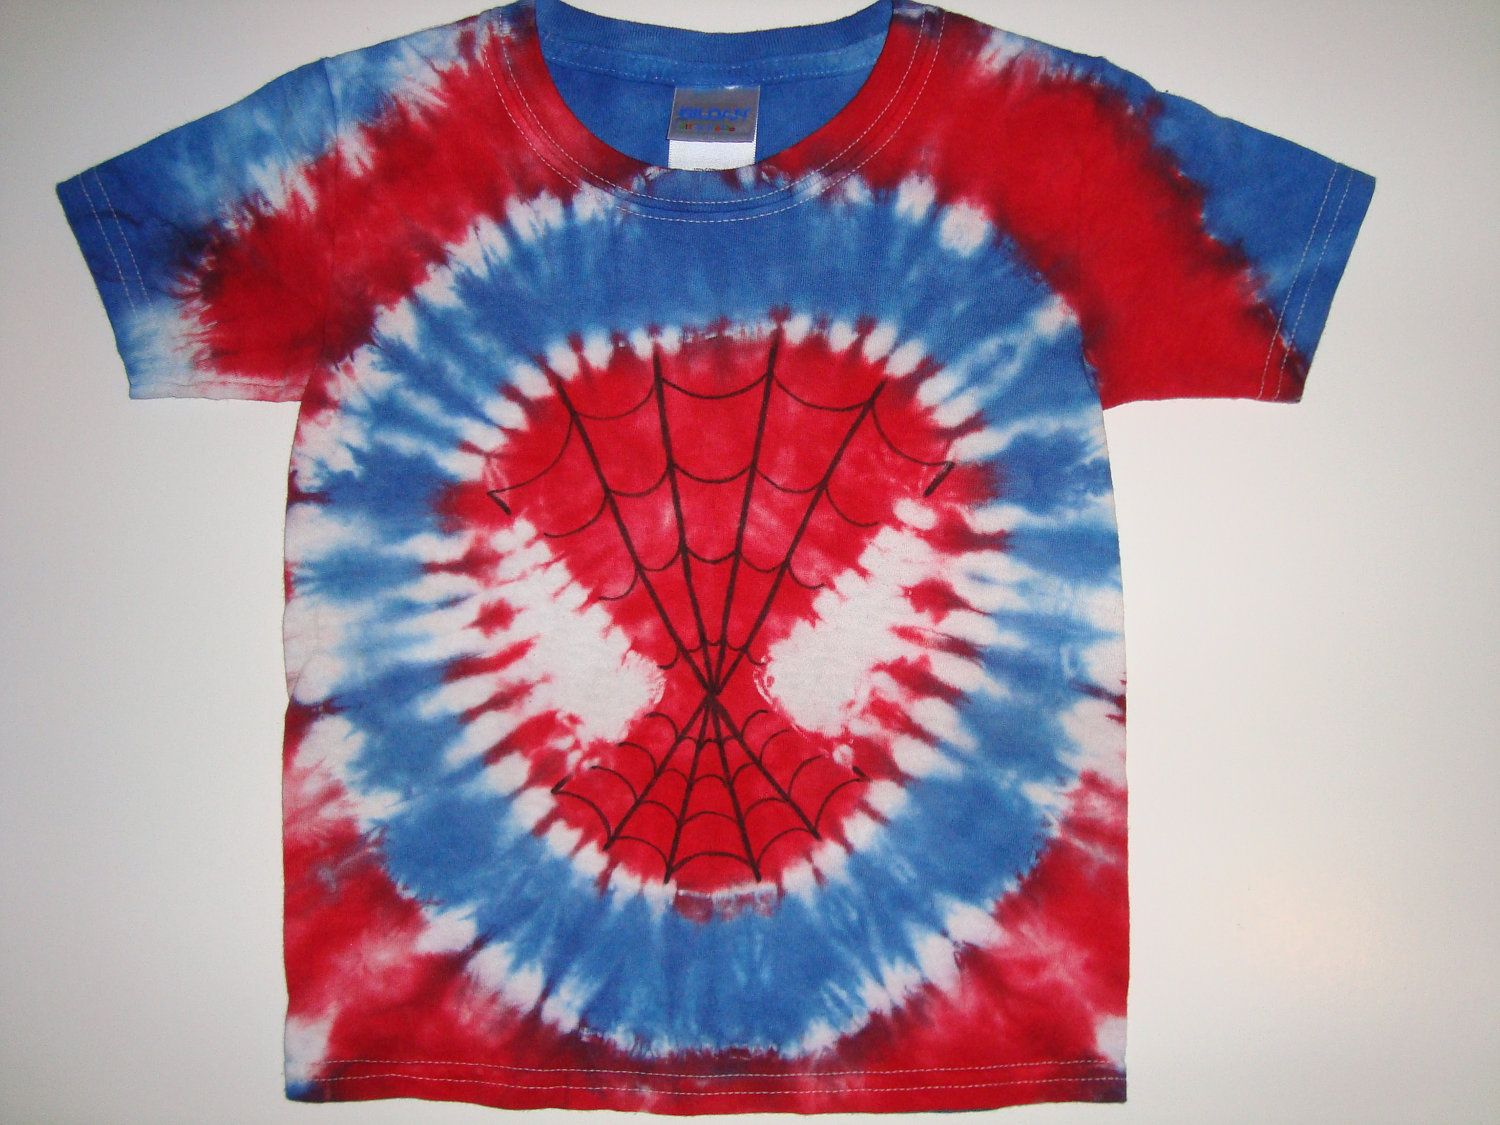 Childrens Tie Dye Spiderman Shirt by HalfPintTieDye on Etsy 2409f2579